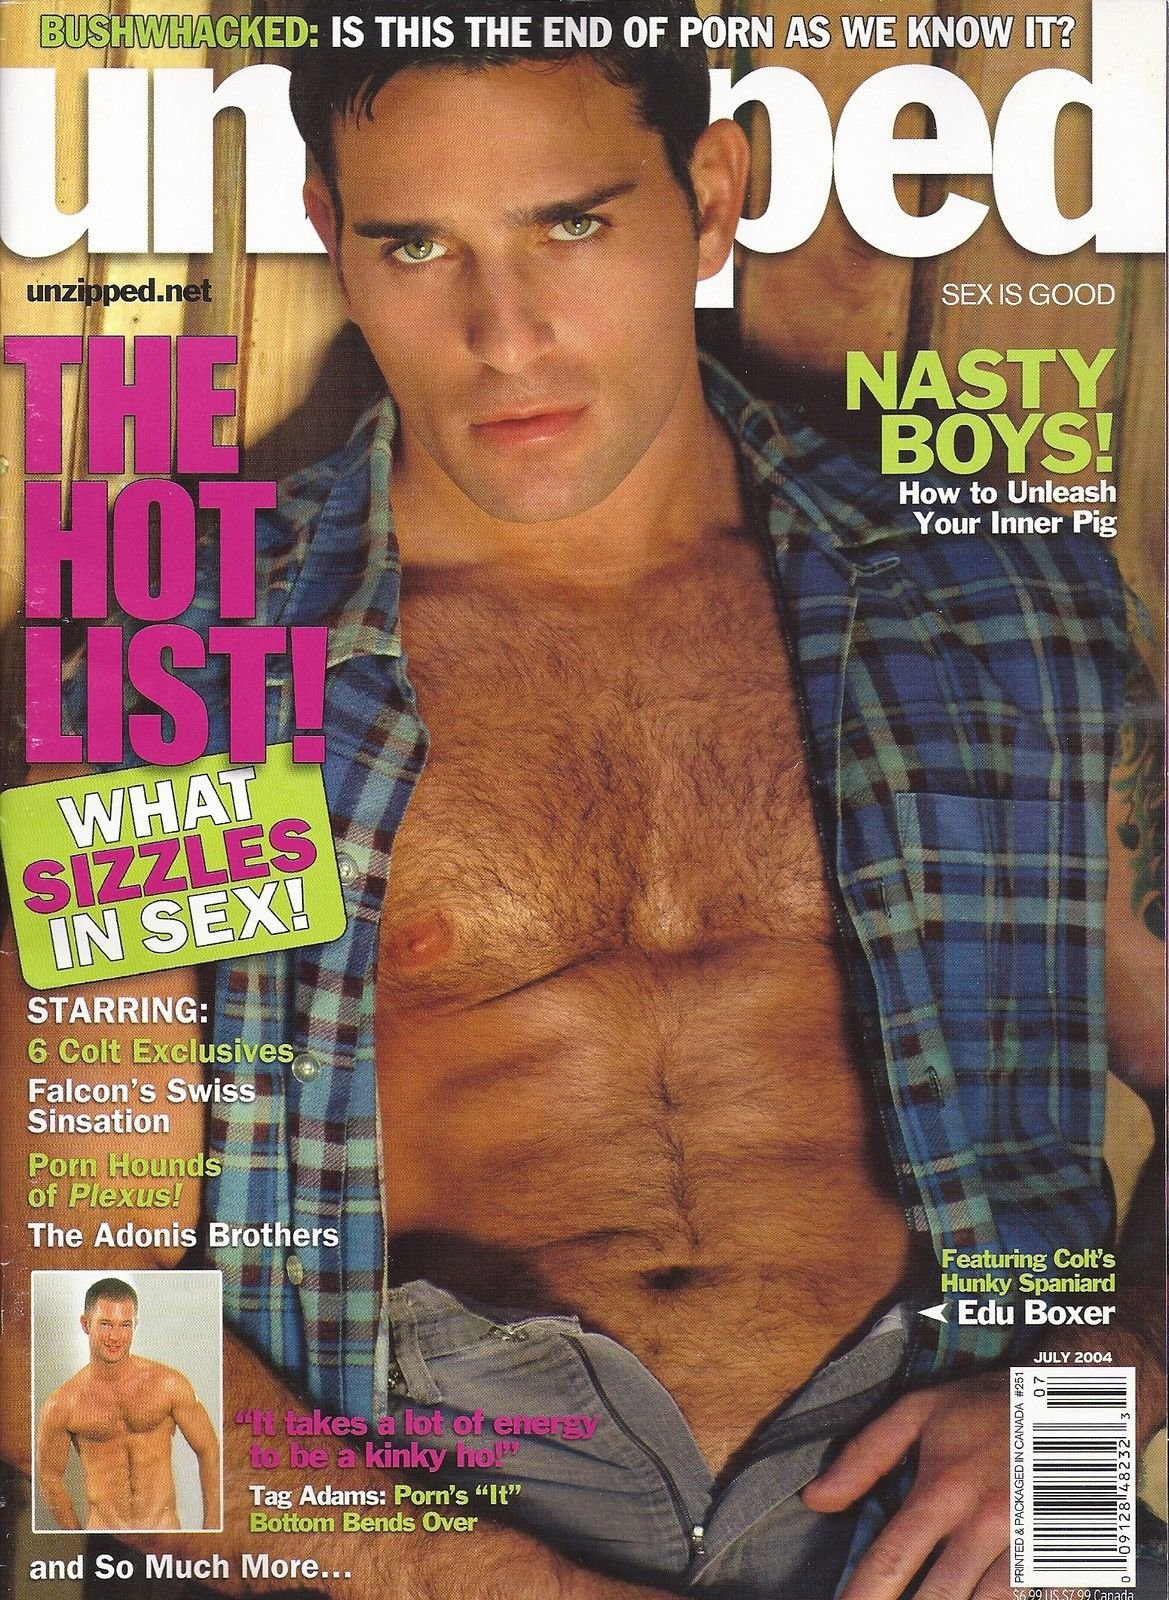 Edu Boxer l Tag Adams l THE HOT LIST! WHAT SIZZLES IN SEX l Secrets of the  Porn Stars l The Magazine of Gay Adult Entertainment - July, 2004 Unzipped  Single ...